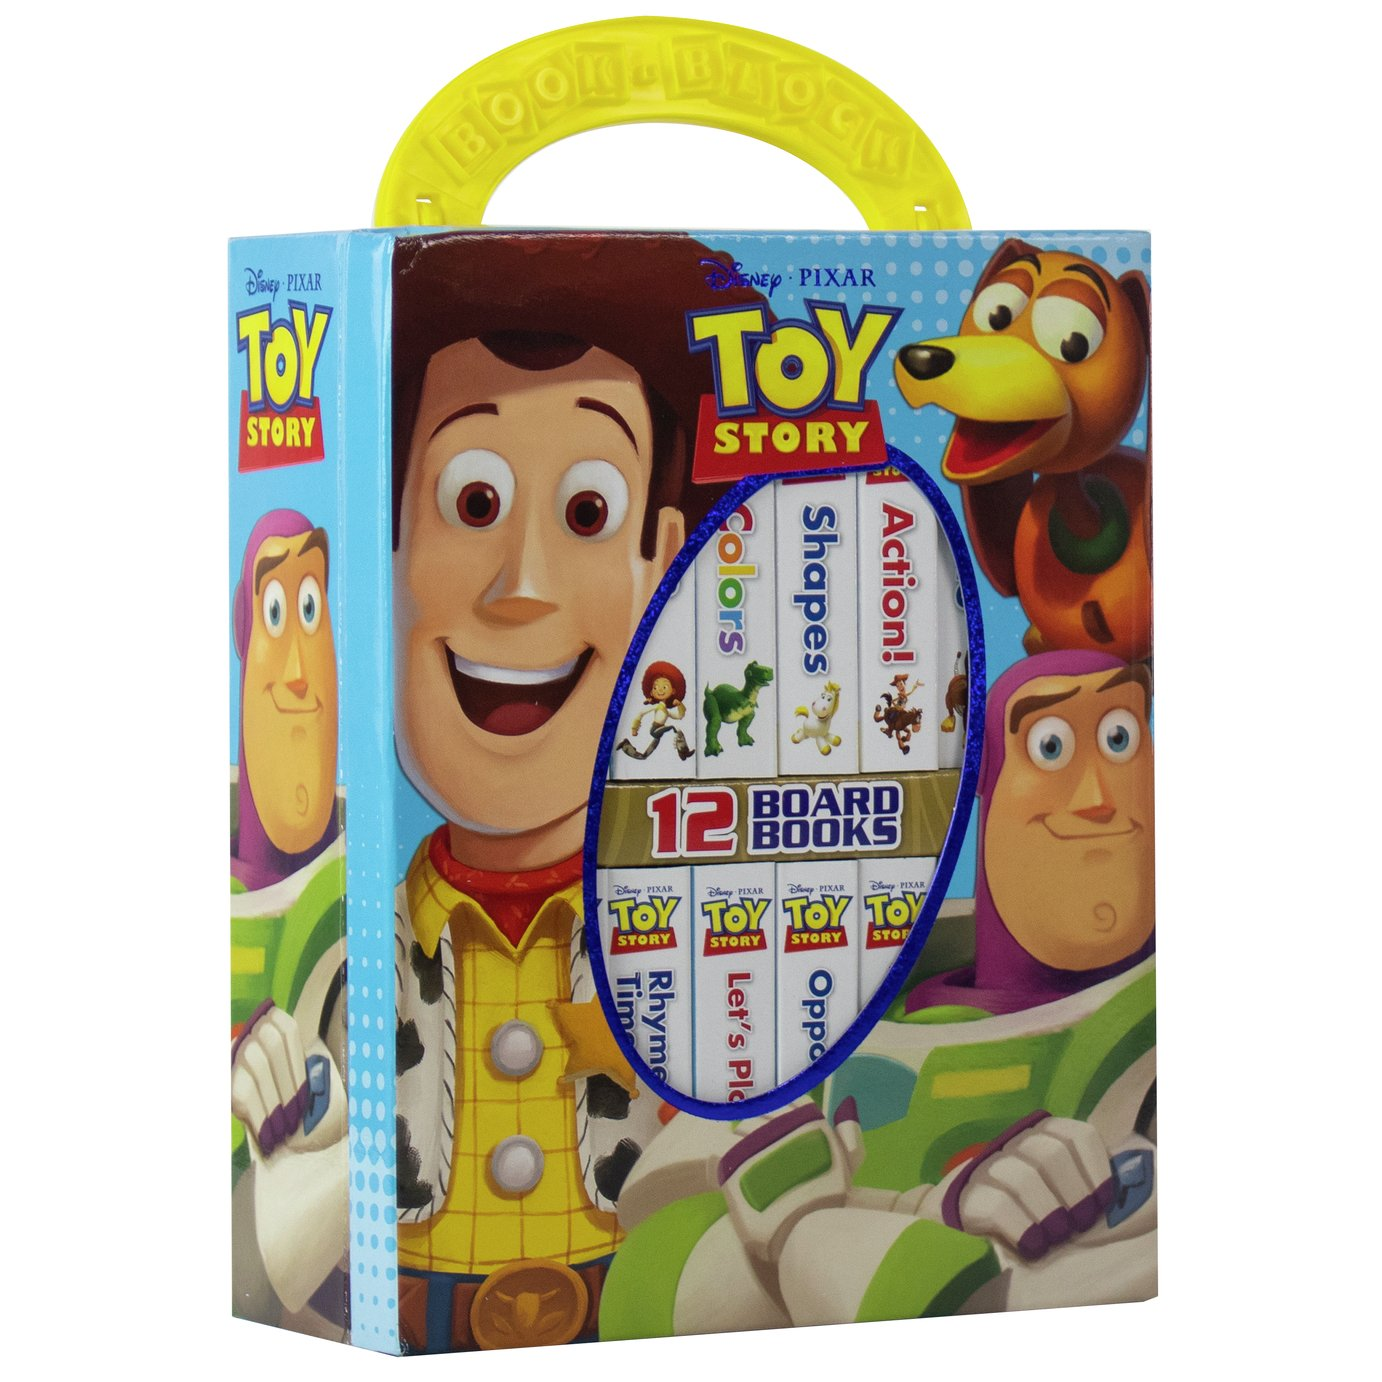 Disney Toy Story My First Library Books